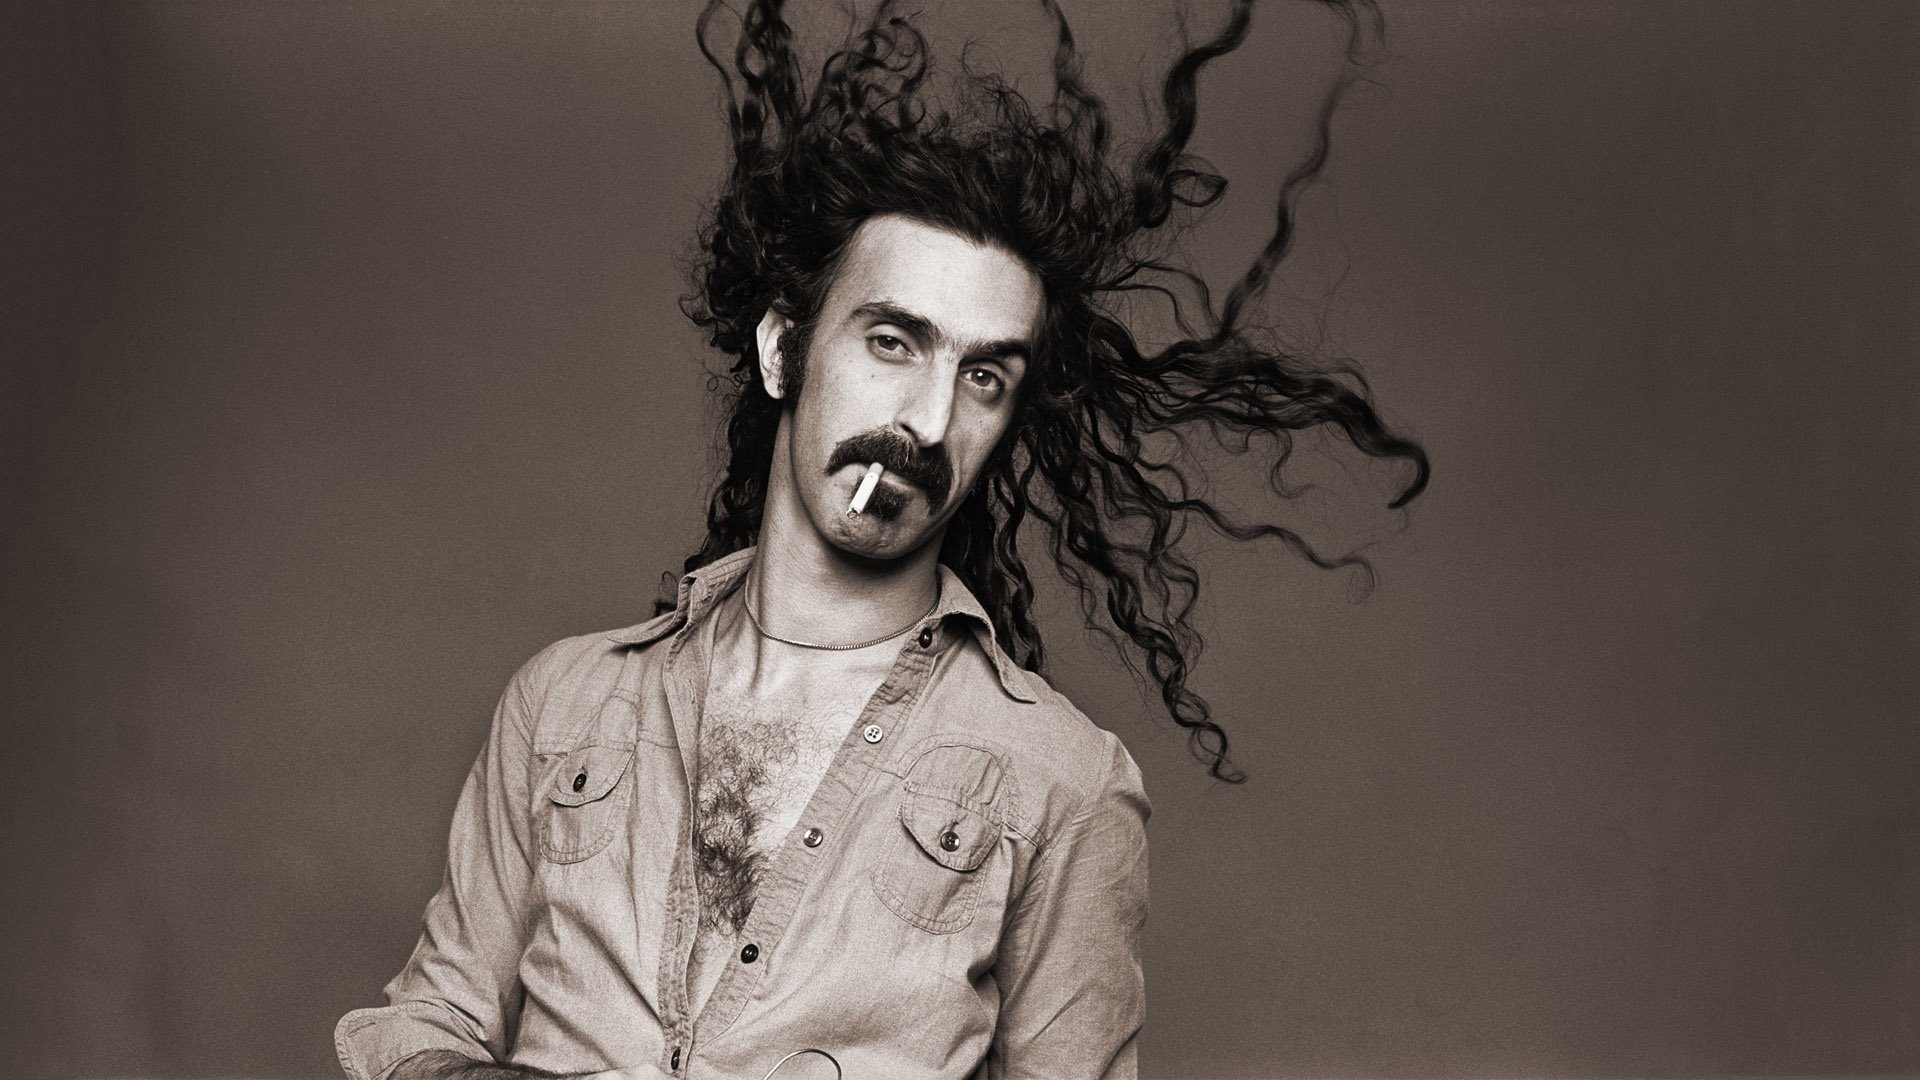 frank zappa hd wallpaper background image 1920x1080 id 799818 wallpaper abyss. Black Bedroom Furniture Sets. Home Design Ideas